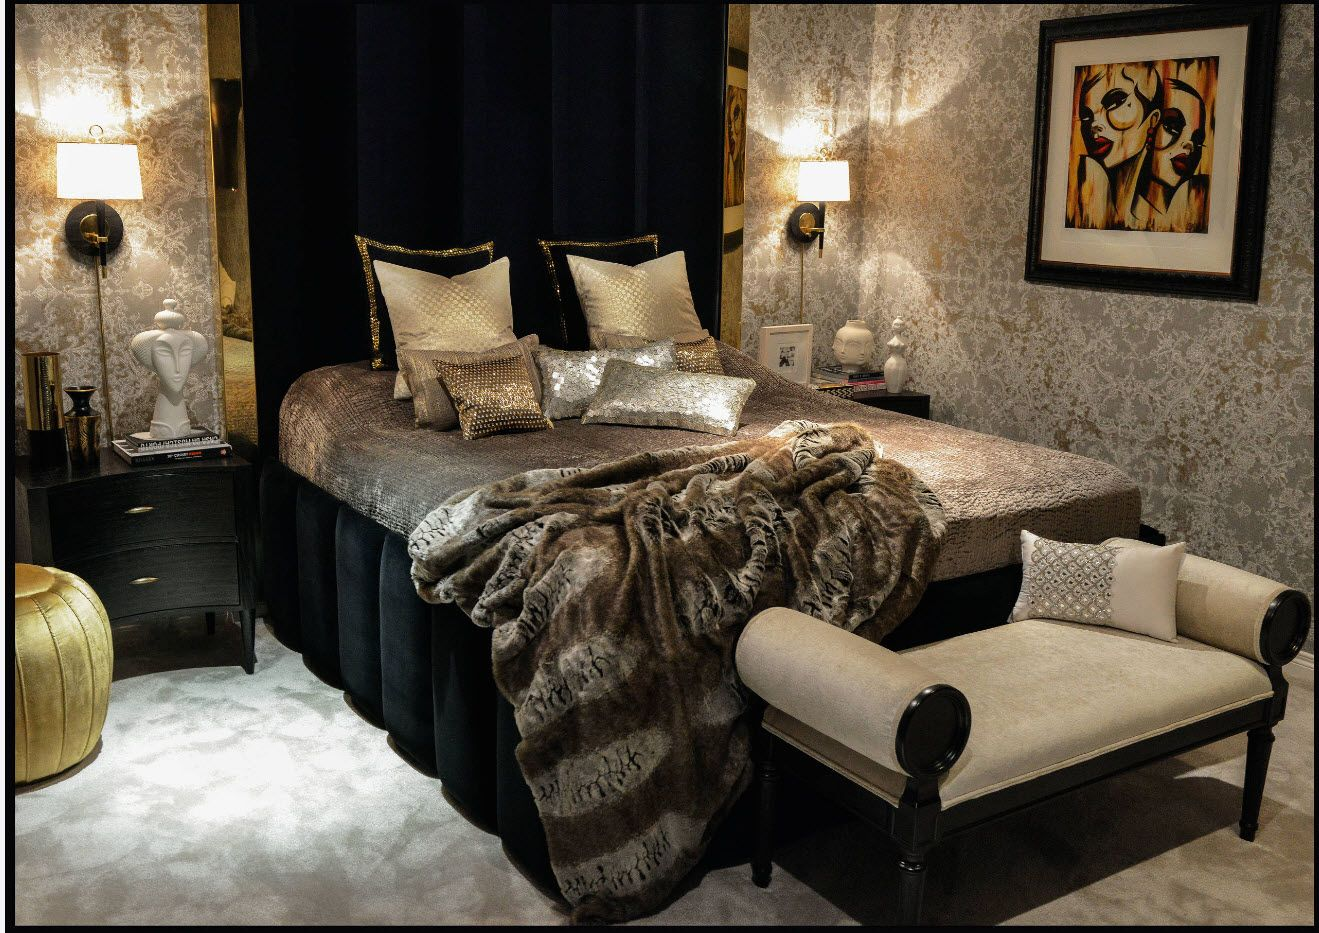 Modern Bedroom Interior Decoration & Design Ideas 2017. Noir style with Classic touch